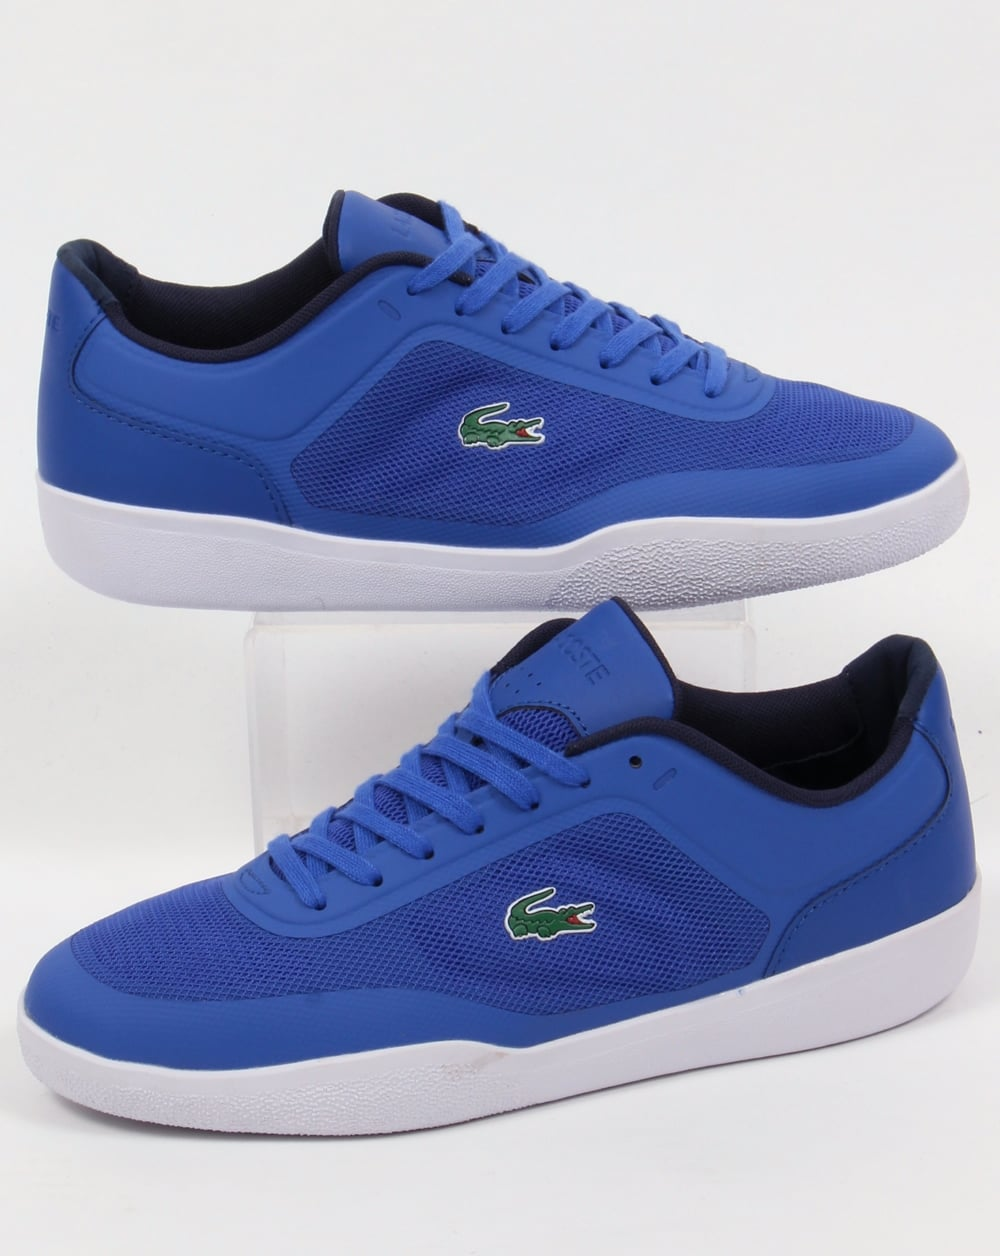 Lacoste Tramline Trainers Royal Blue/White,shoes,sneakers,mens